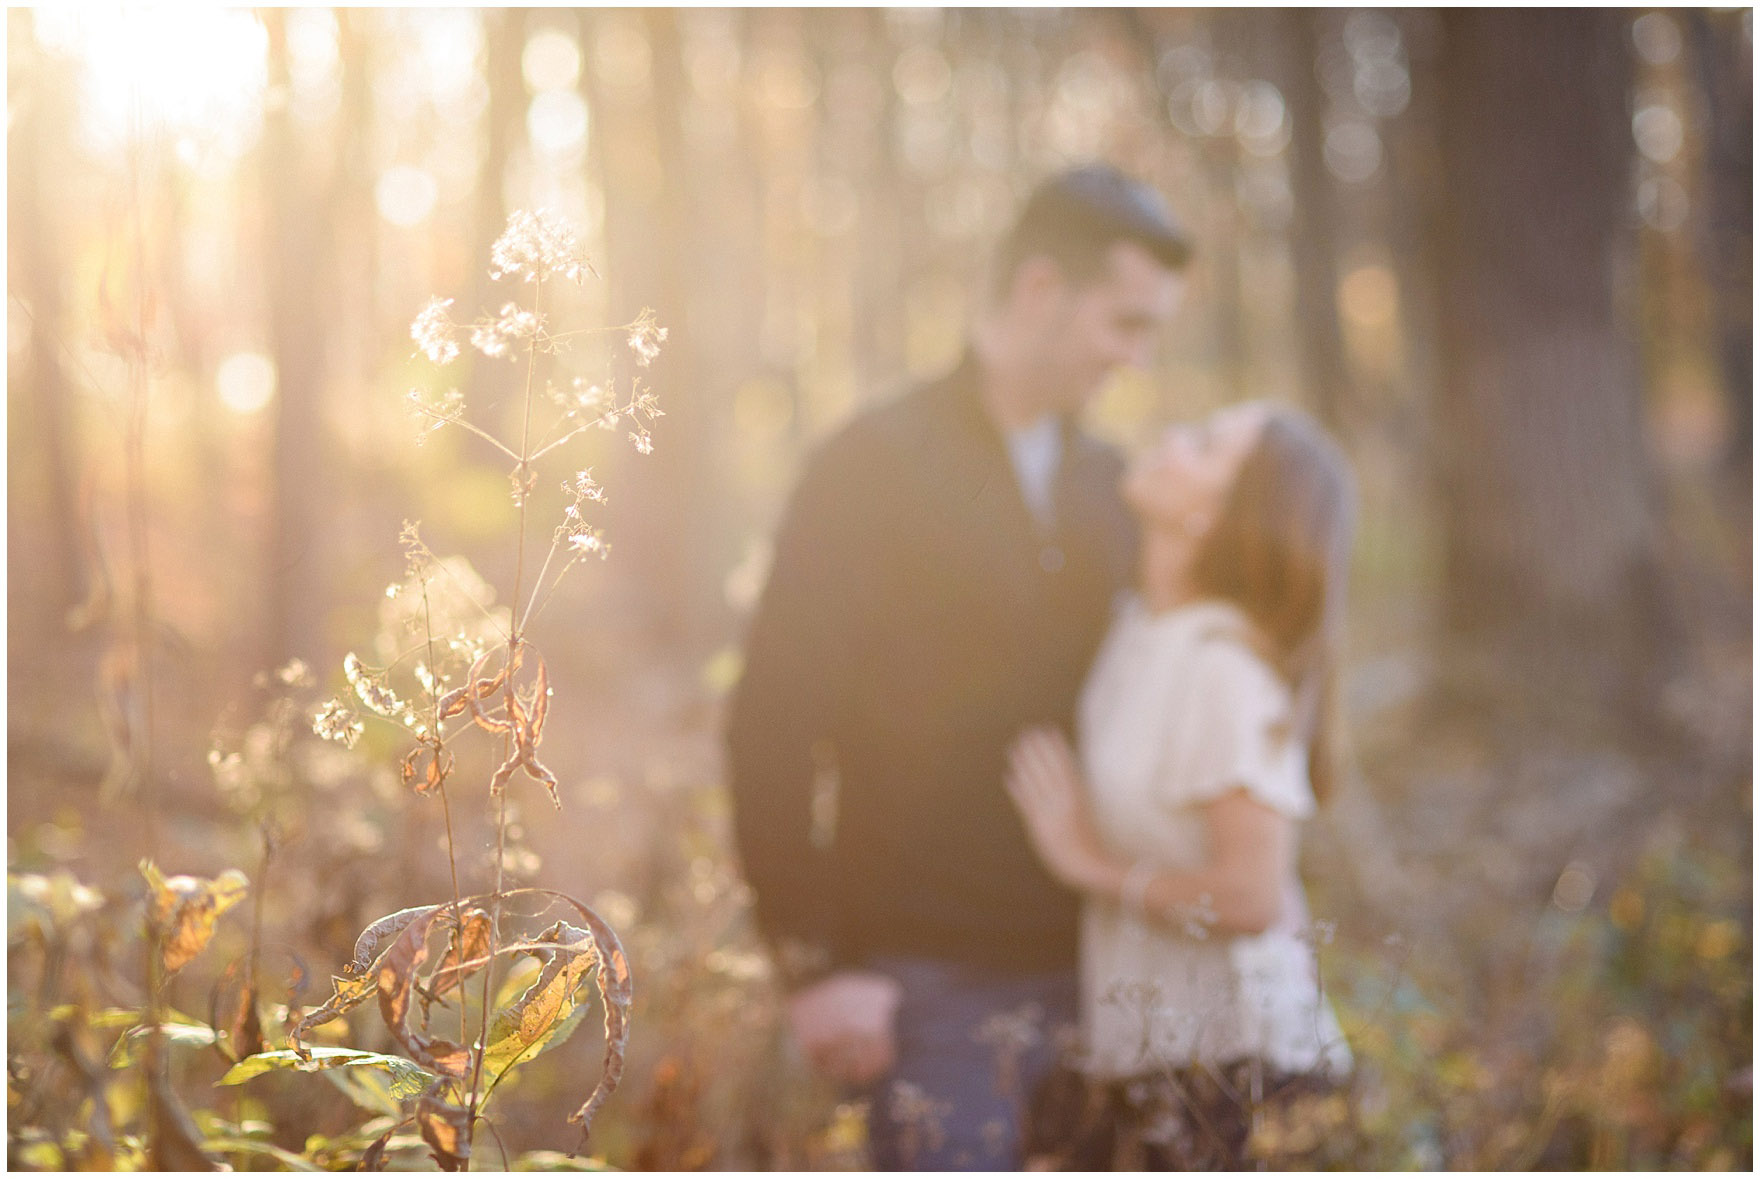 A couple embraces among tall grasses and trees during a fall woods engagement session.